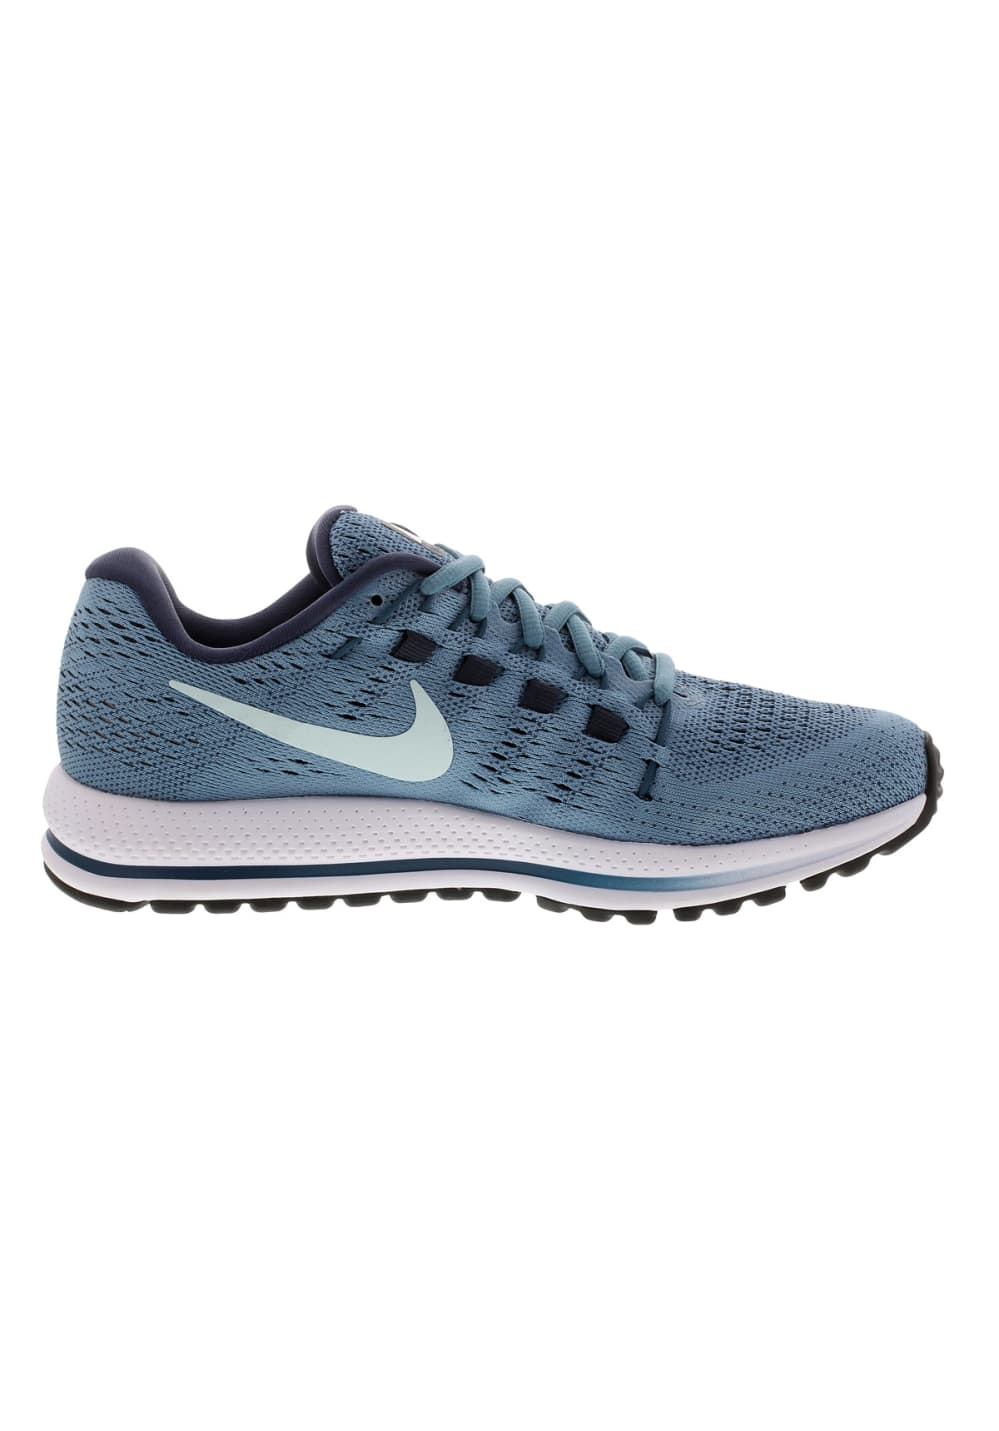 0f323740f3d Next. -60%. Nike. Air Zoom Vomero 12 - Running shoes for Women